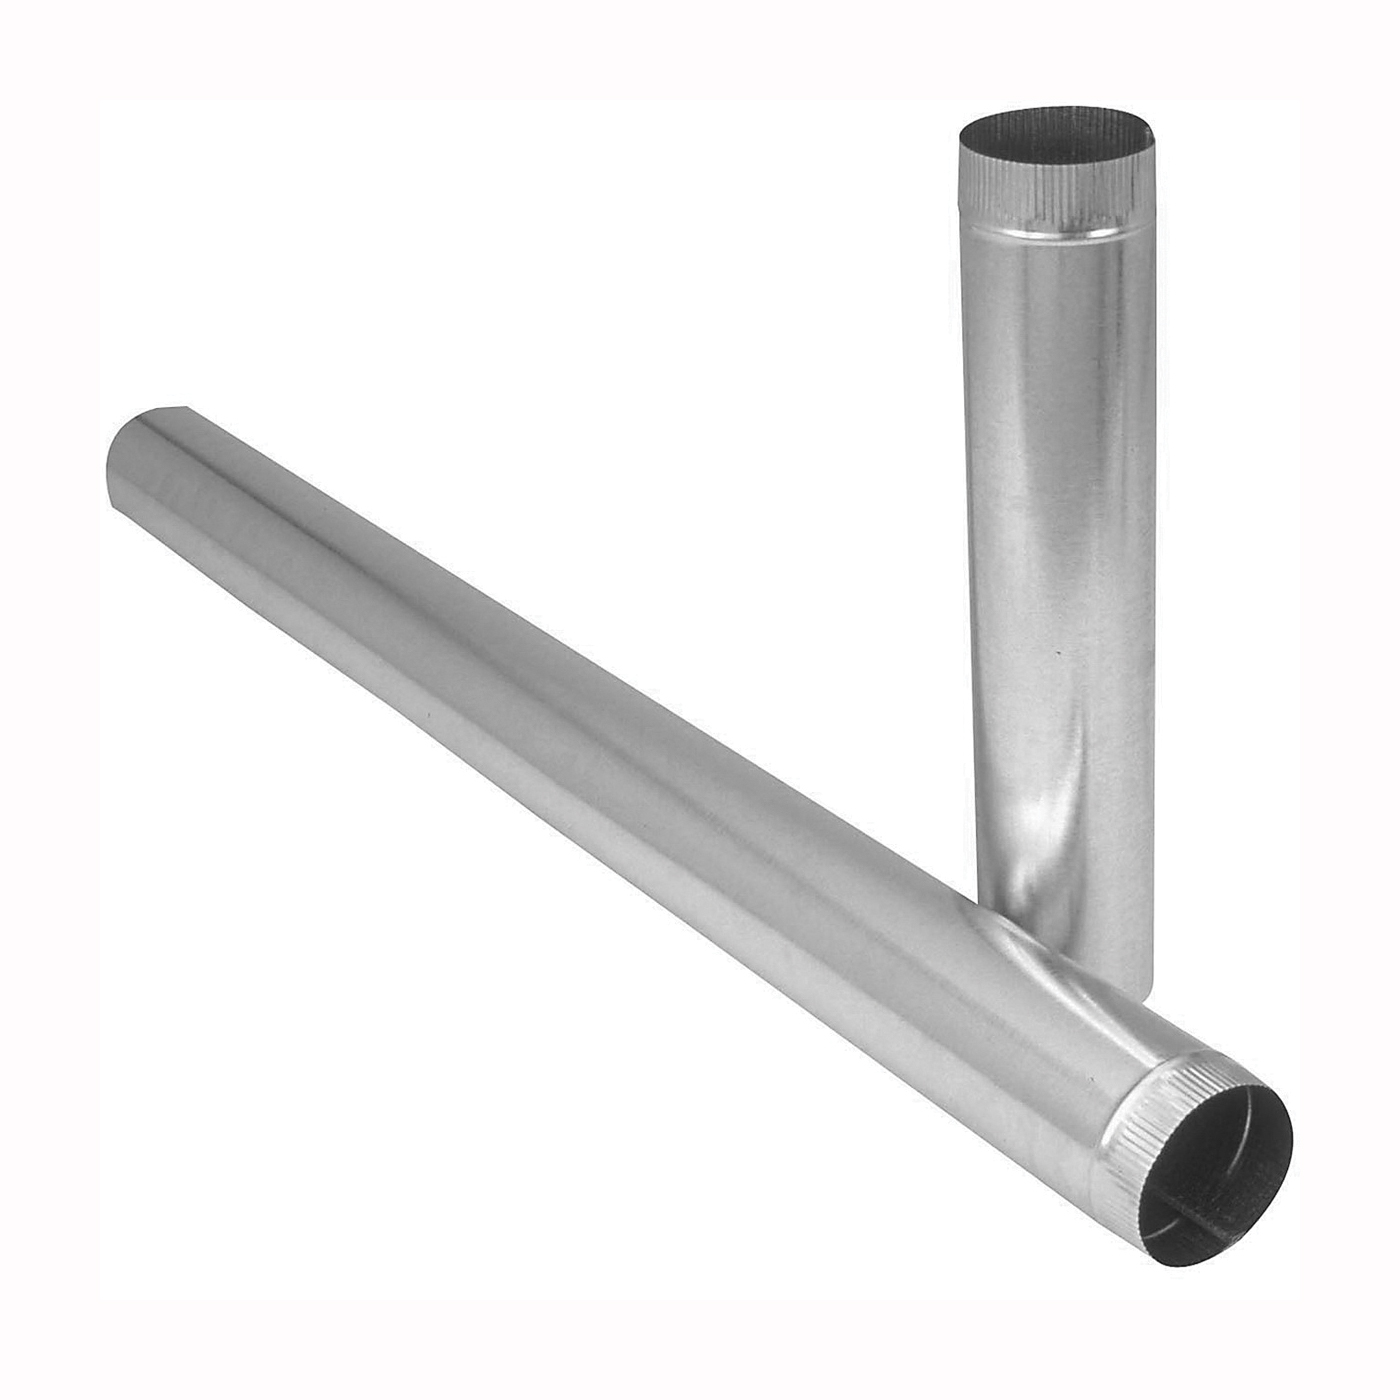 Picture of Imperial GV1335 Duct Pipe, 7 in Dia, 24 in L, 30 Gauge, Galvanized Steel, Galvanized